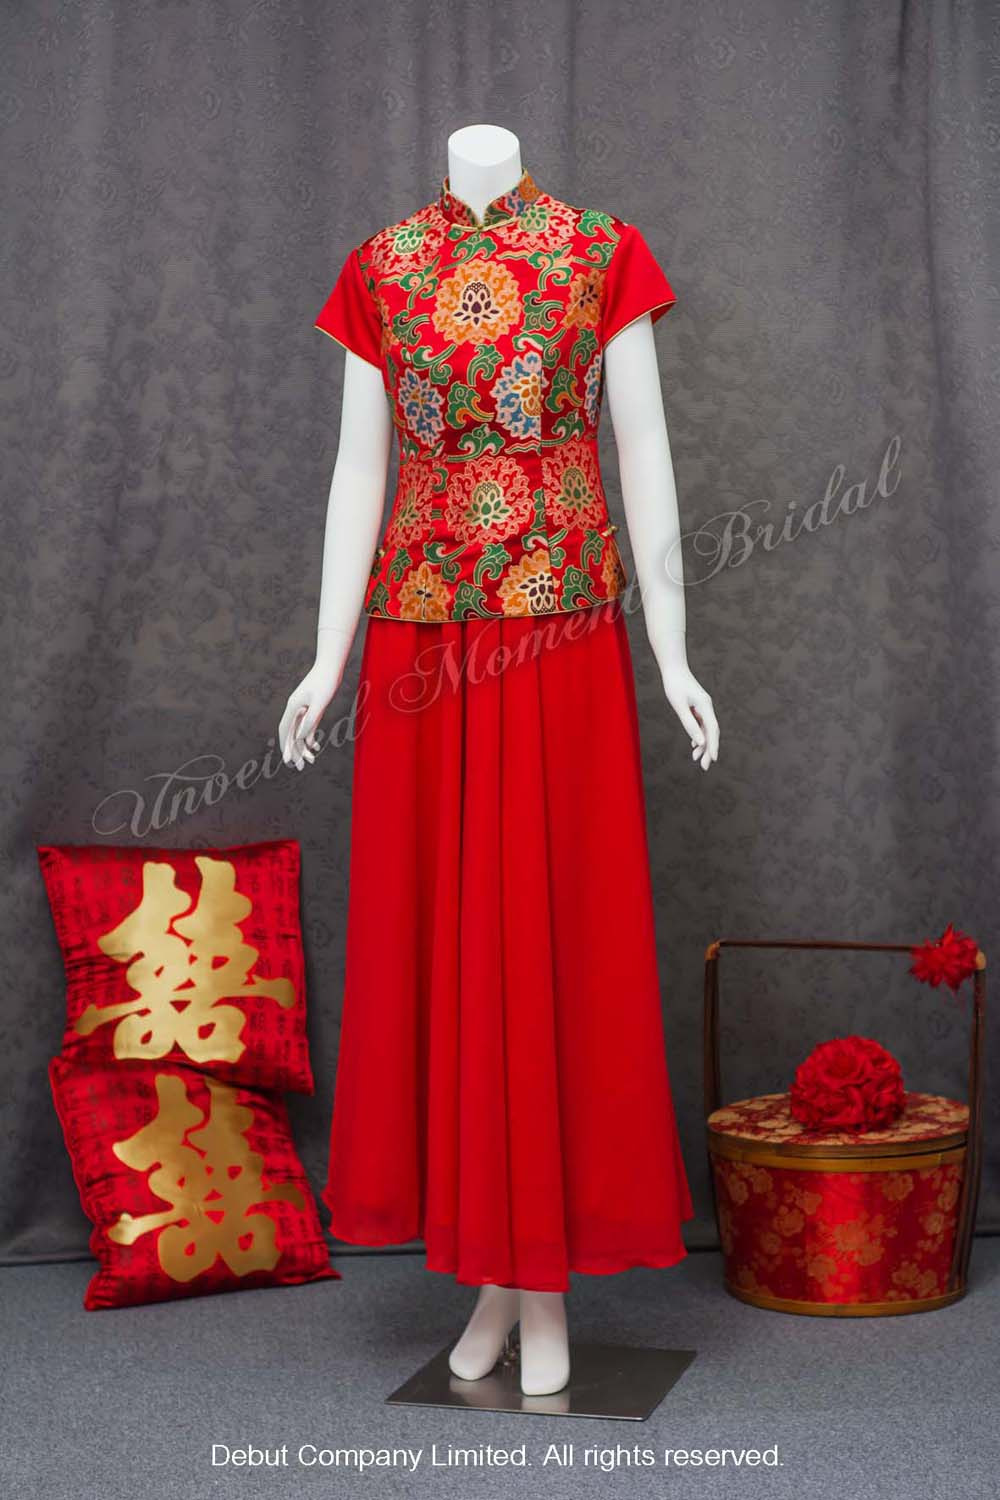 Chinese Evening Gown with decorative peony embroideries 企領牡丹刺繡中式晚裝